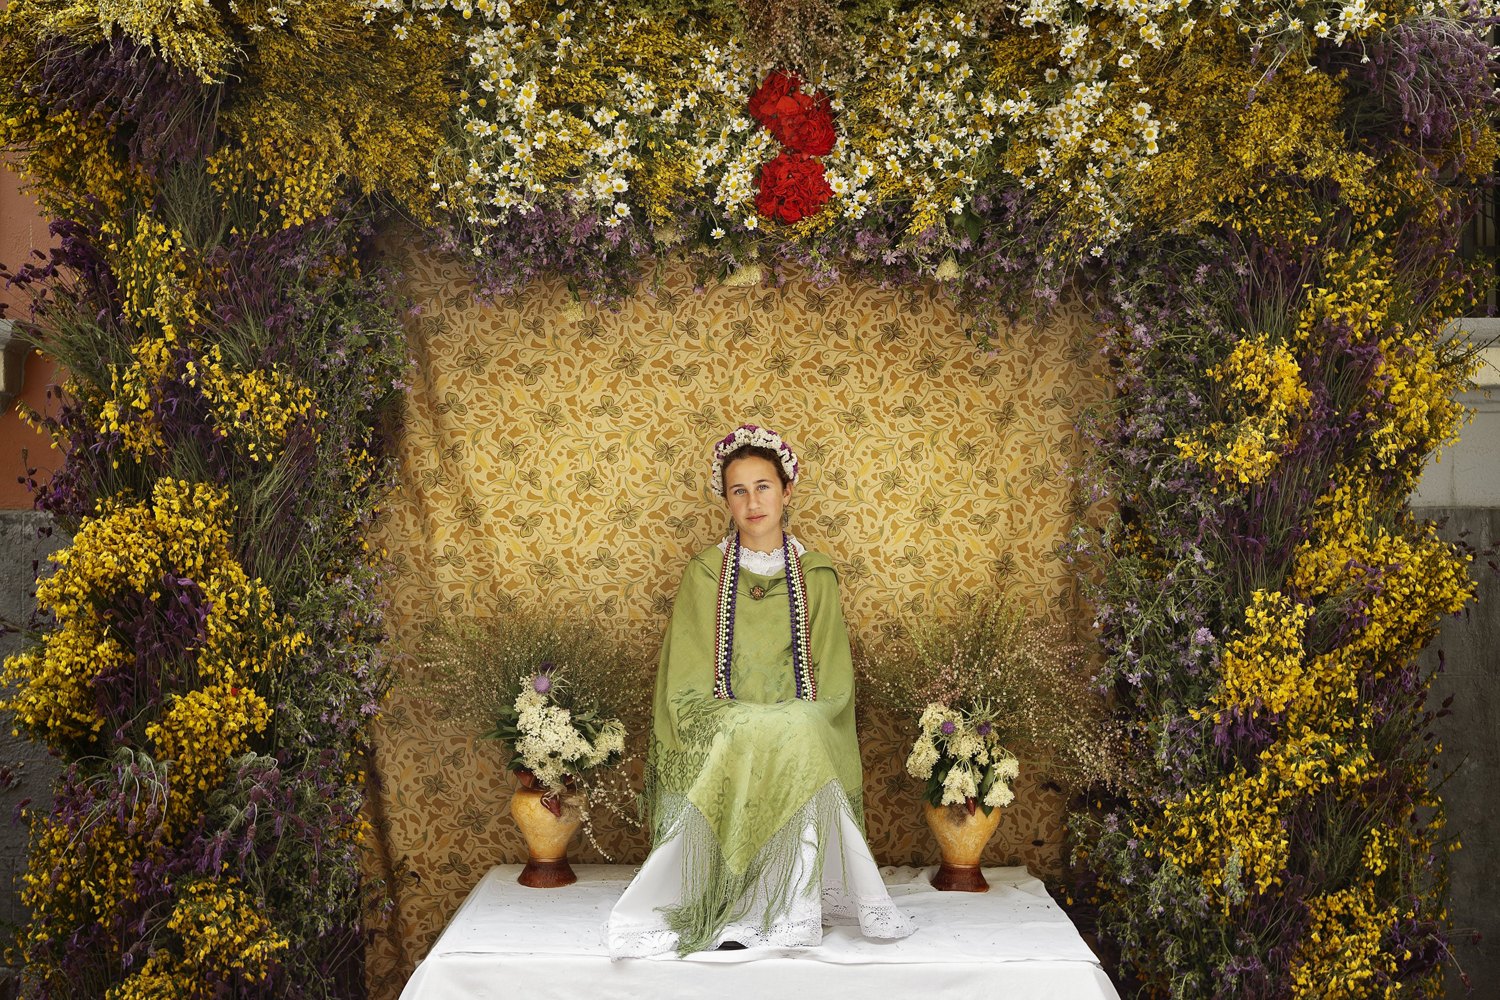 May 11, 2014. A 'Maya' girl sits on an altar during the traditional celebration of 'Las Mayas' on a street, in central Madrid, Spain.